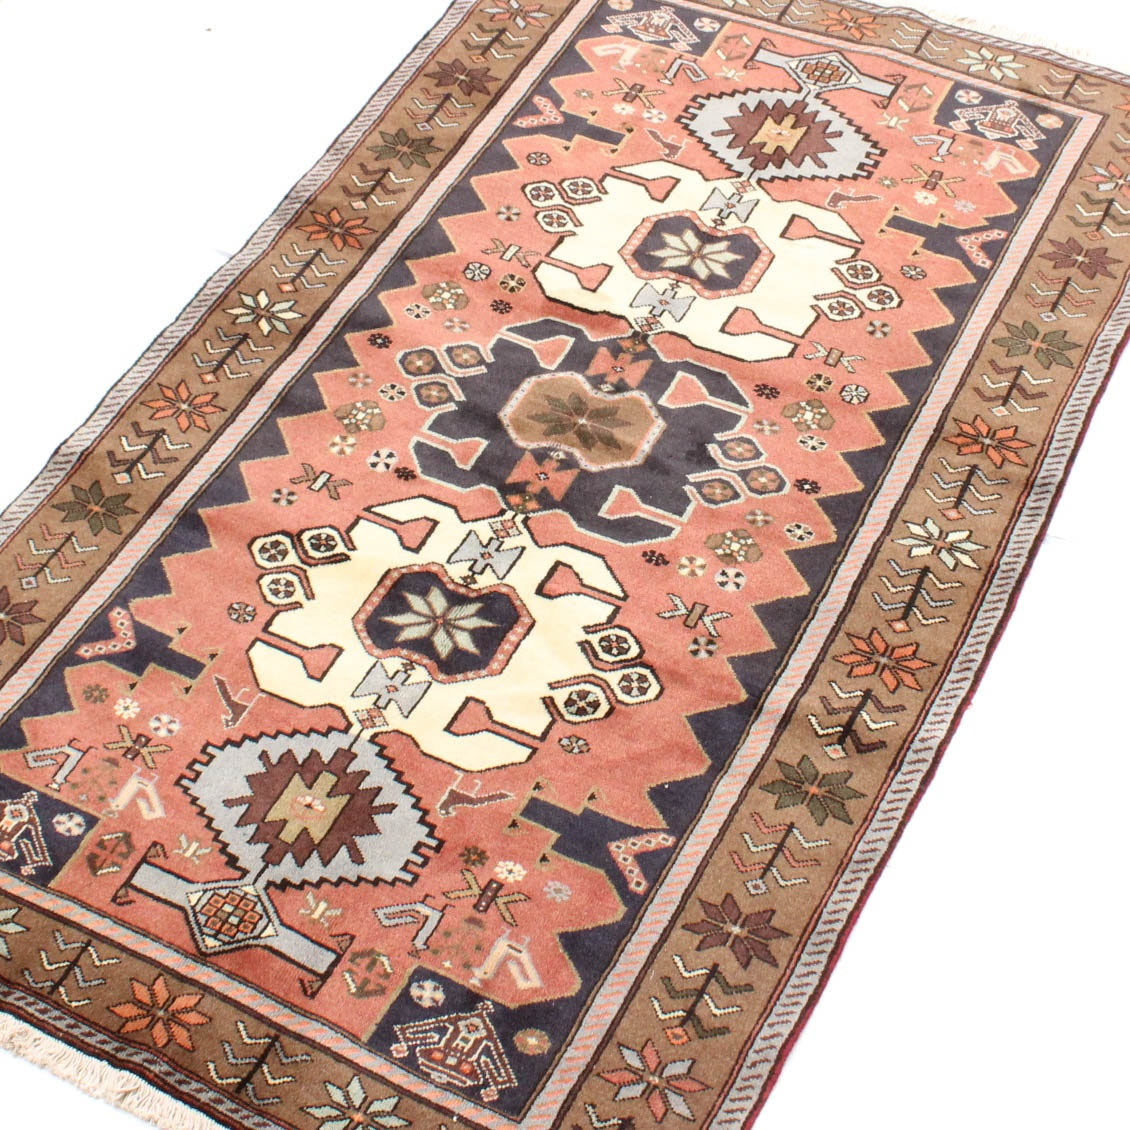 4' x 7' Semi-Antique Hand-Knotted Persian Malayer Pictorial Rug